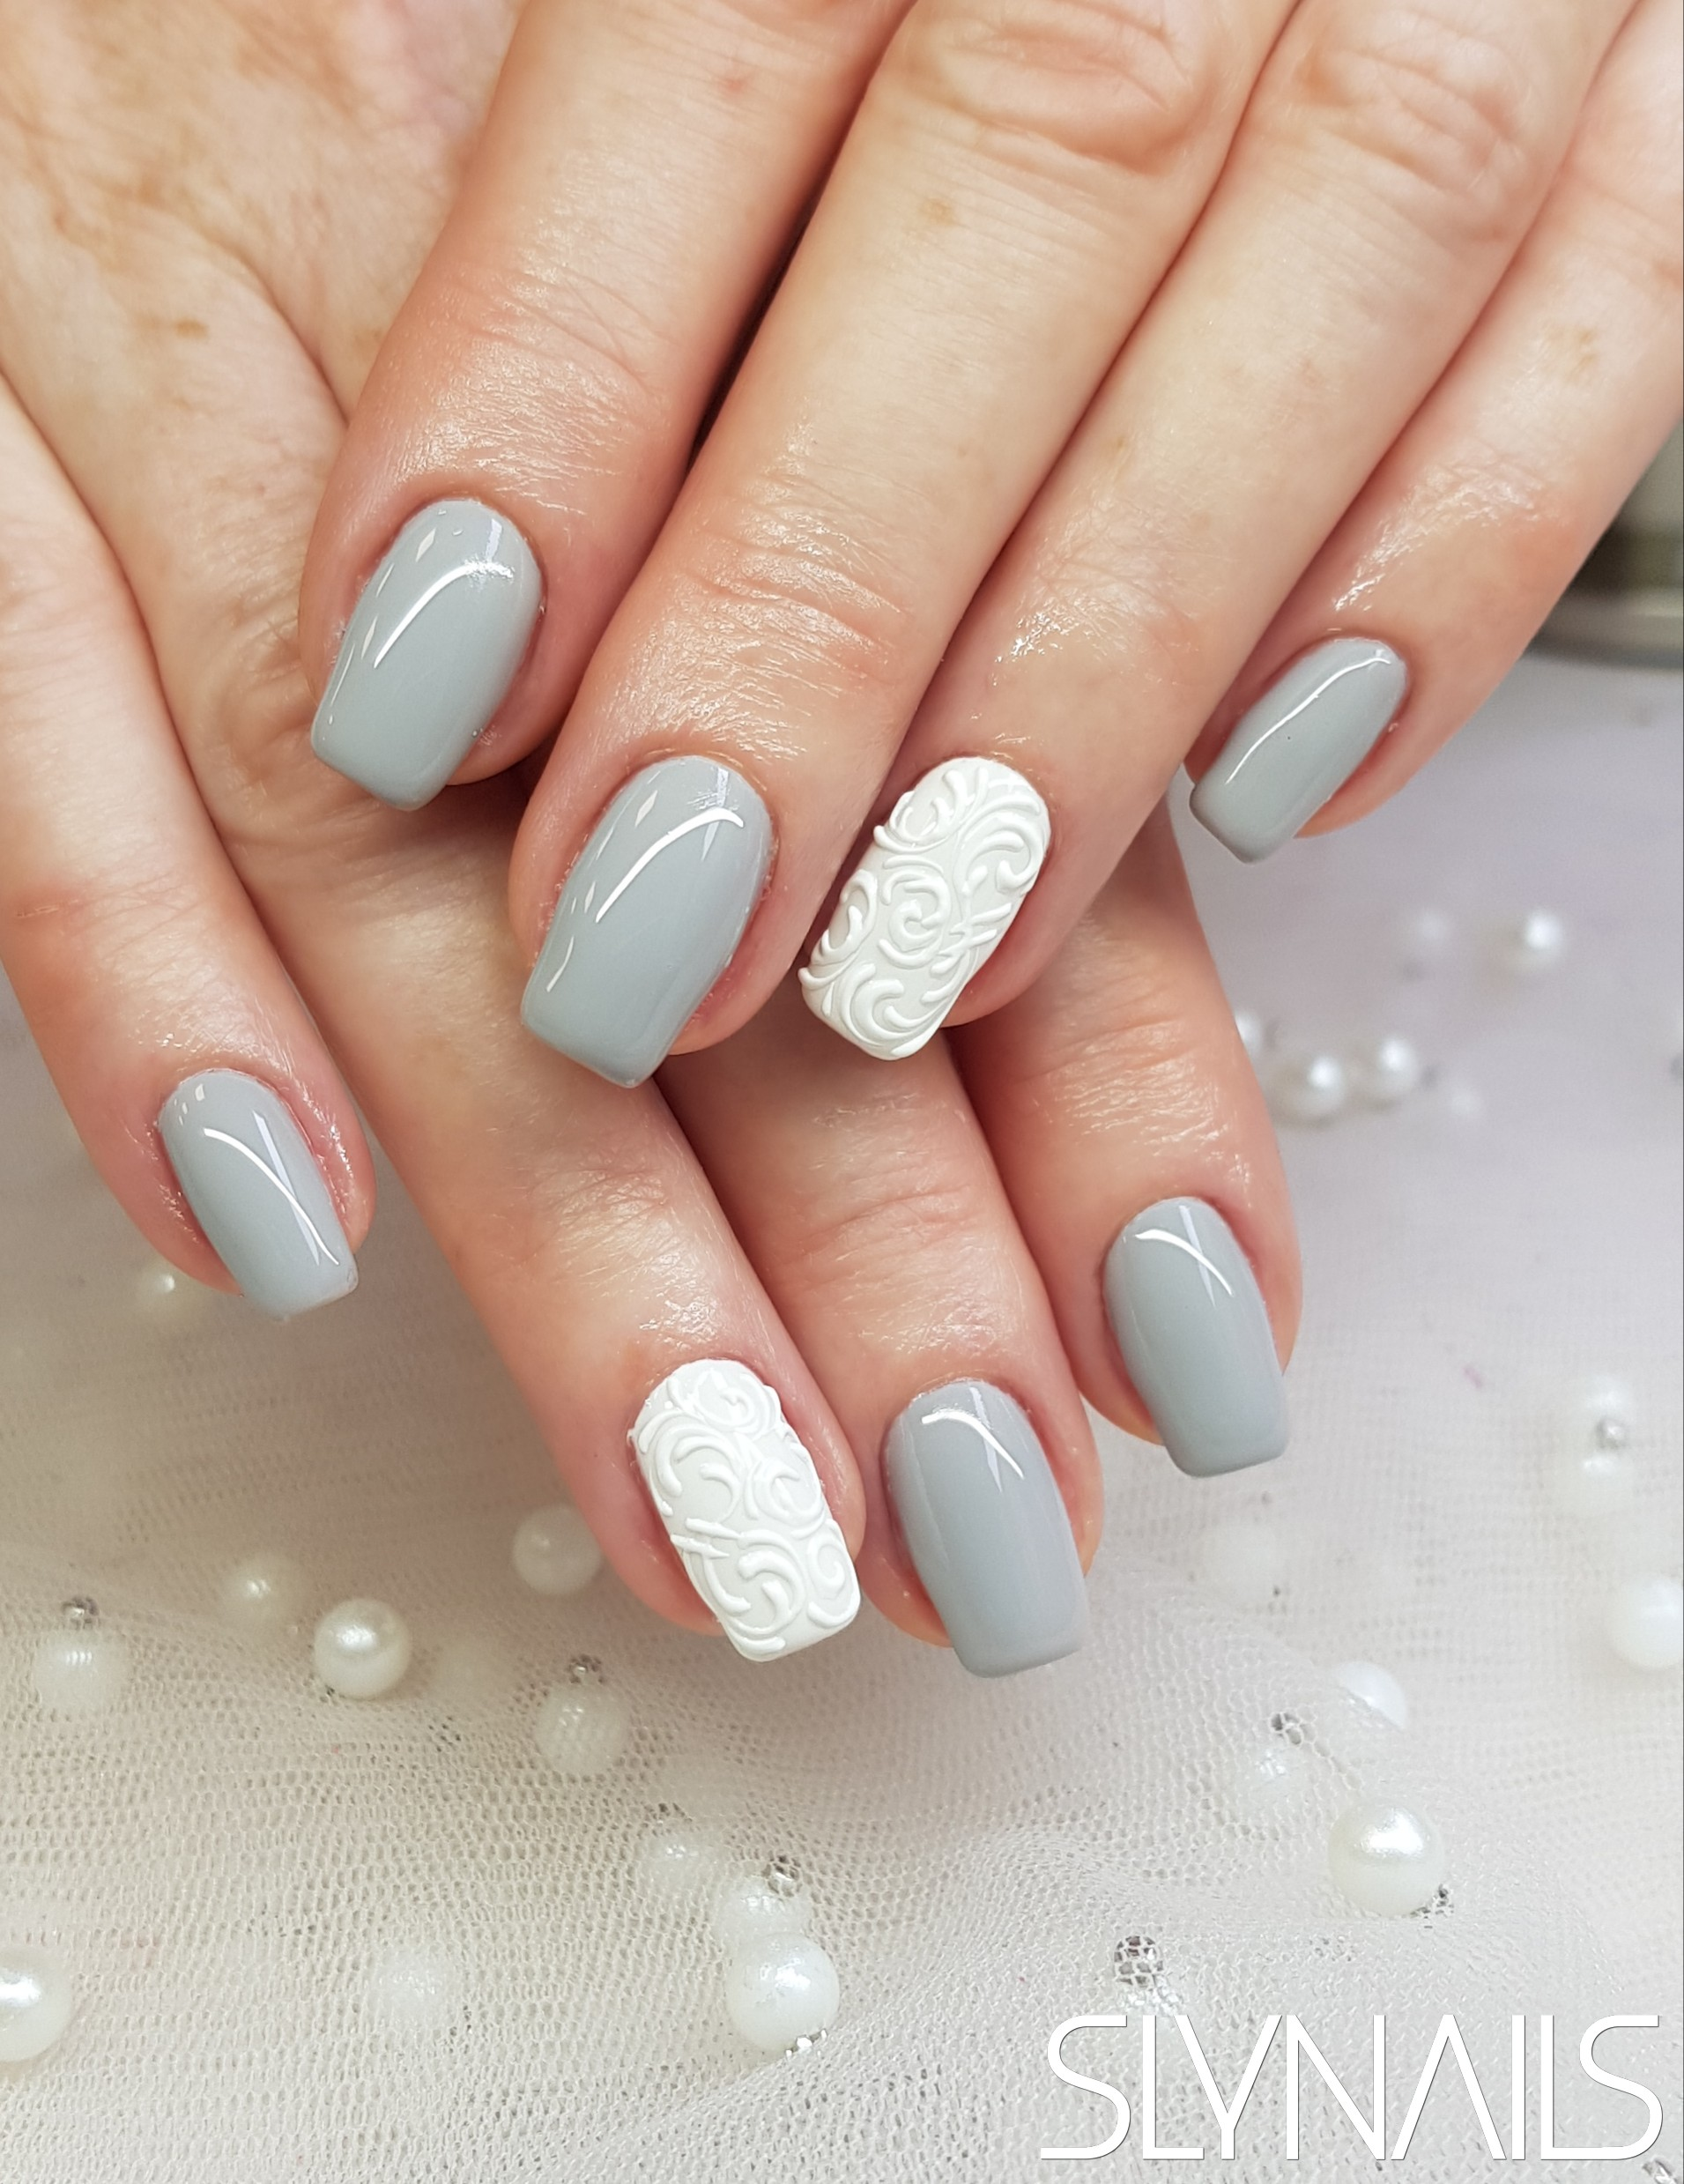 Gel-lac (gel polish), Grey, Square, White, One color, Art gel decorations, Tendril Pattern